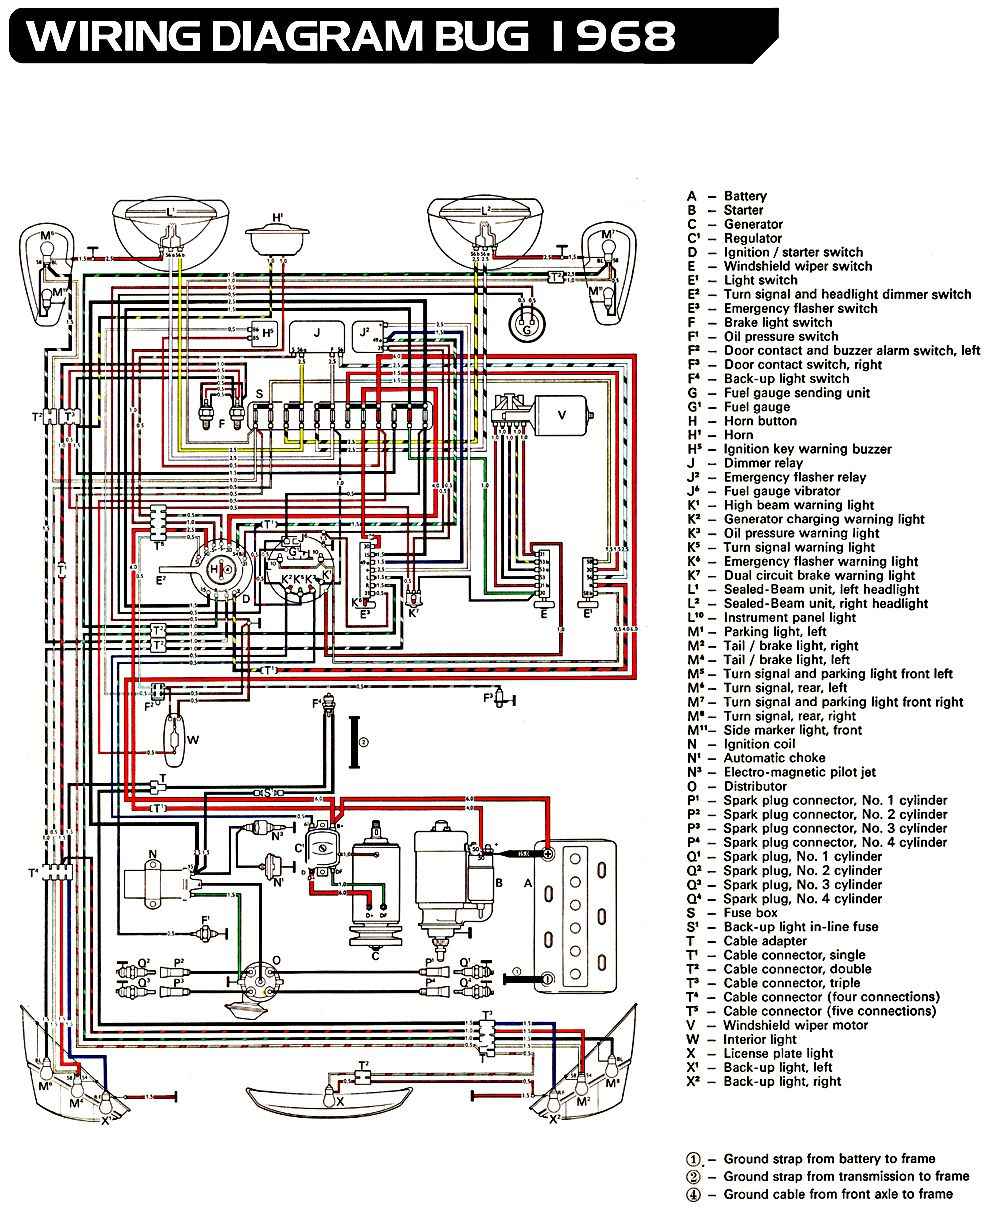 3a1908112d3826270ed5e3be362292bf vw bug ignition wiring diagram 73 vw wiring diagram free vw type 3 wiring harness at readyjetset.co